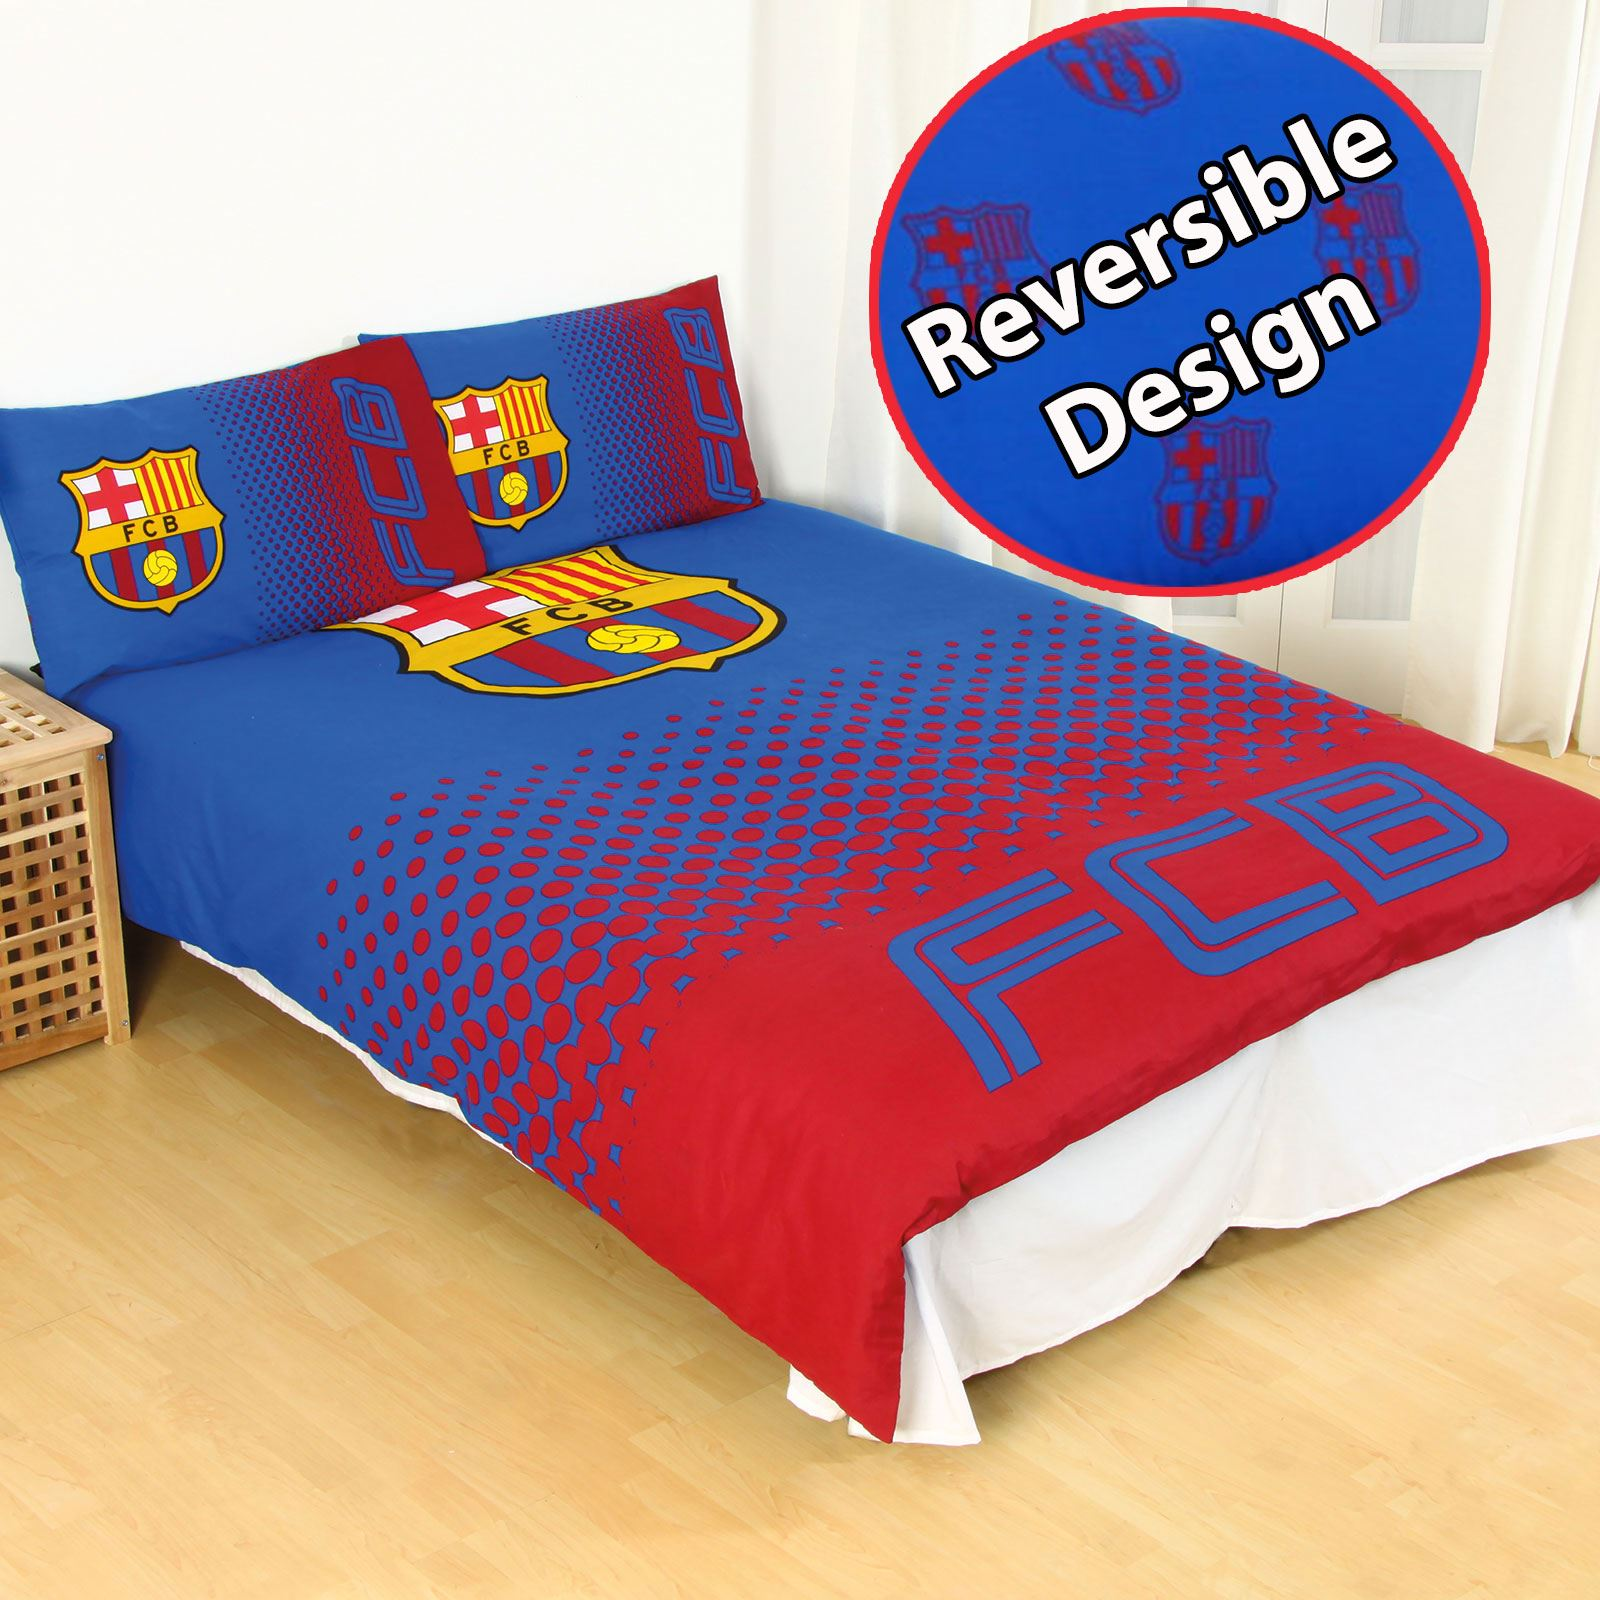 official fc barcelona fade reversible double duvet cover